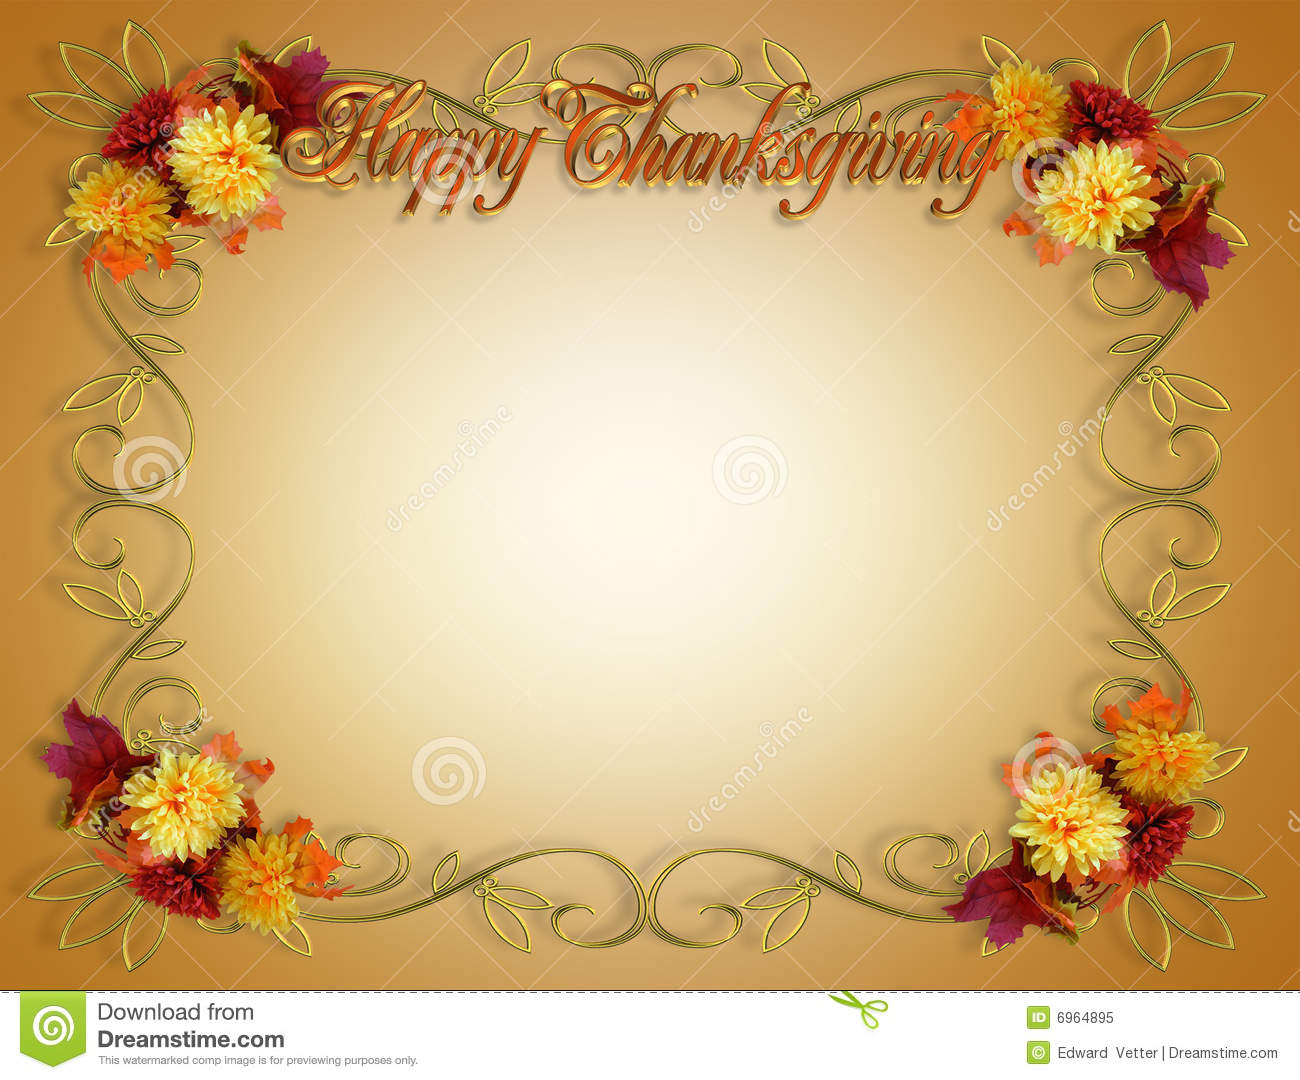 image about Free Printable Thanksgiving Borders known as 48+ Thanksgiving Borders Clip Artwork Absolutely free ClipartLook